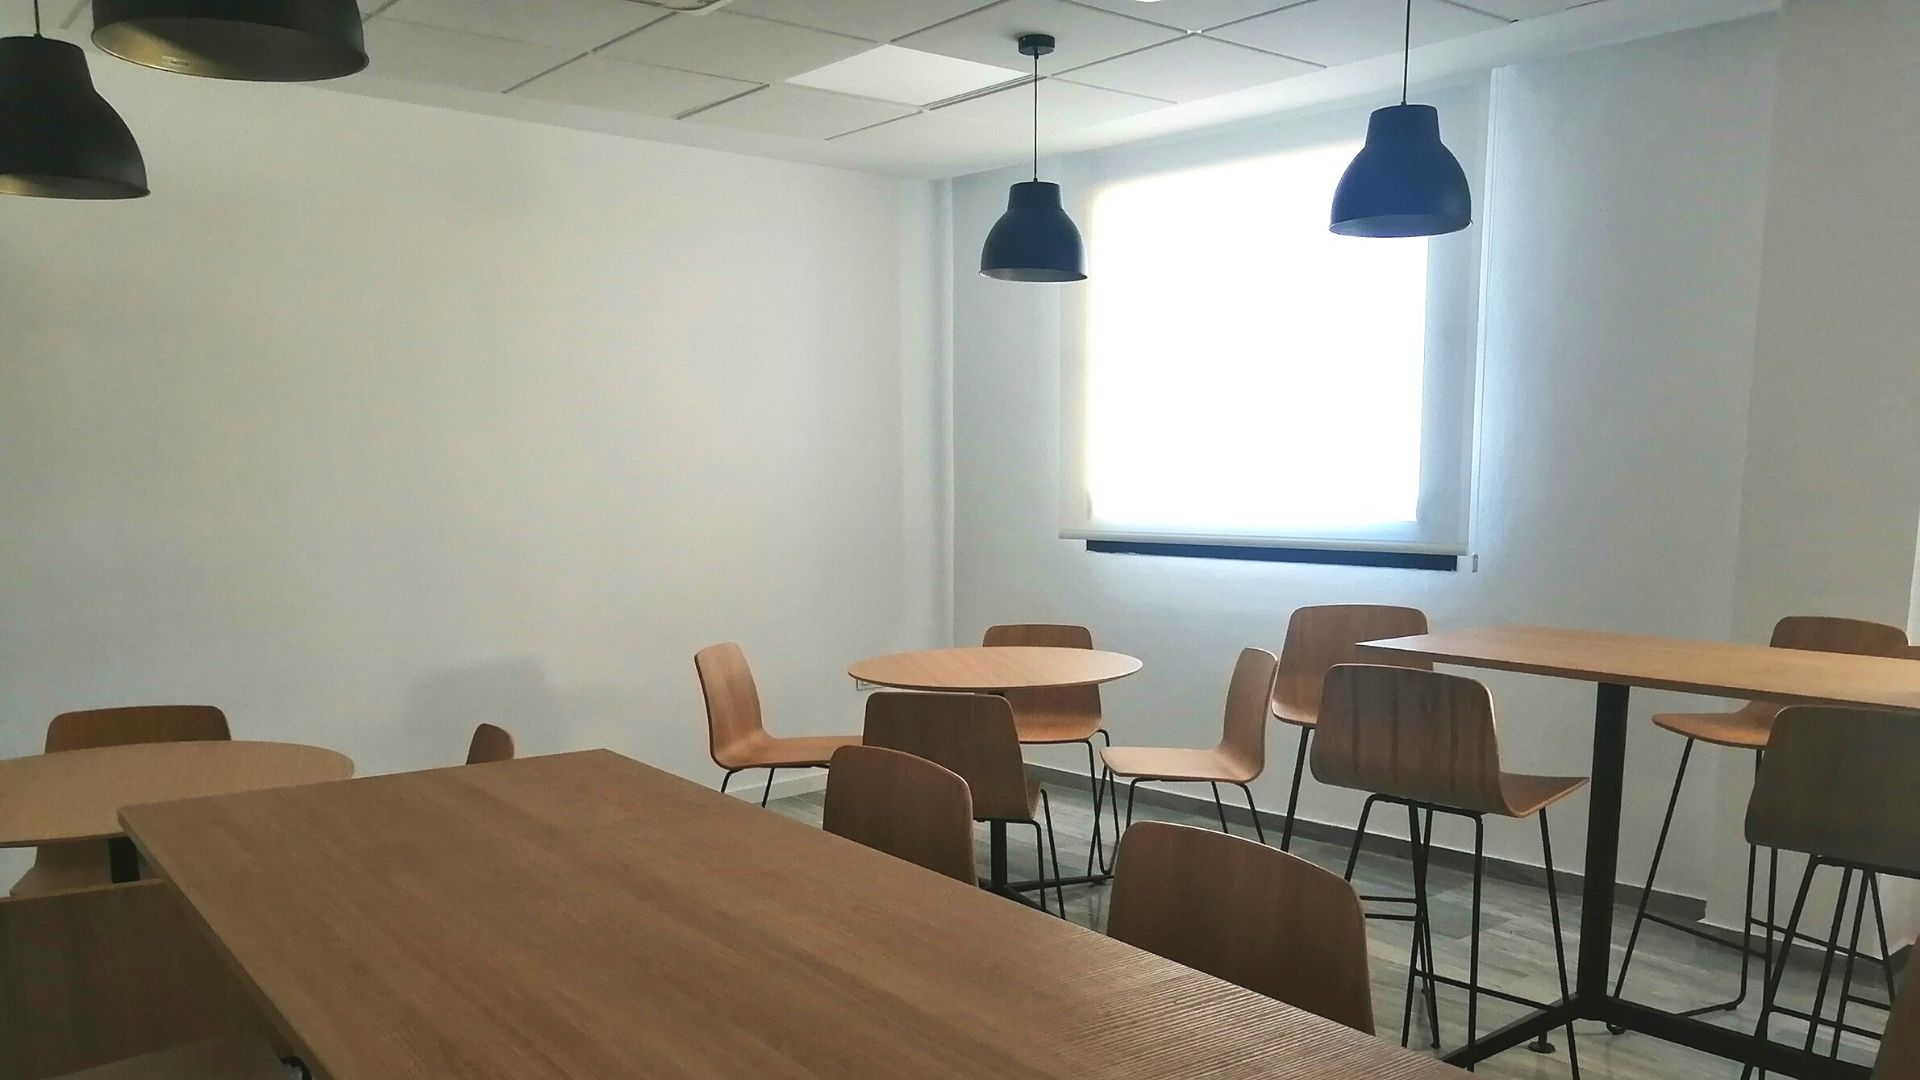 Our new Adessa office in Malaga is open! - canteen